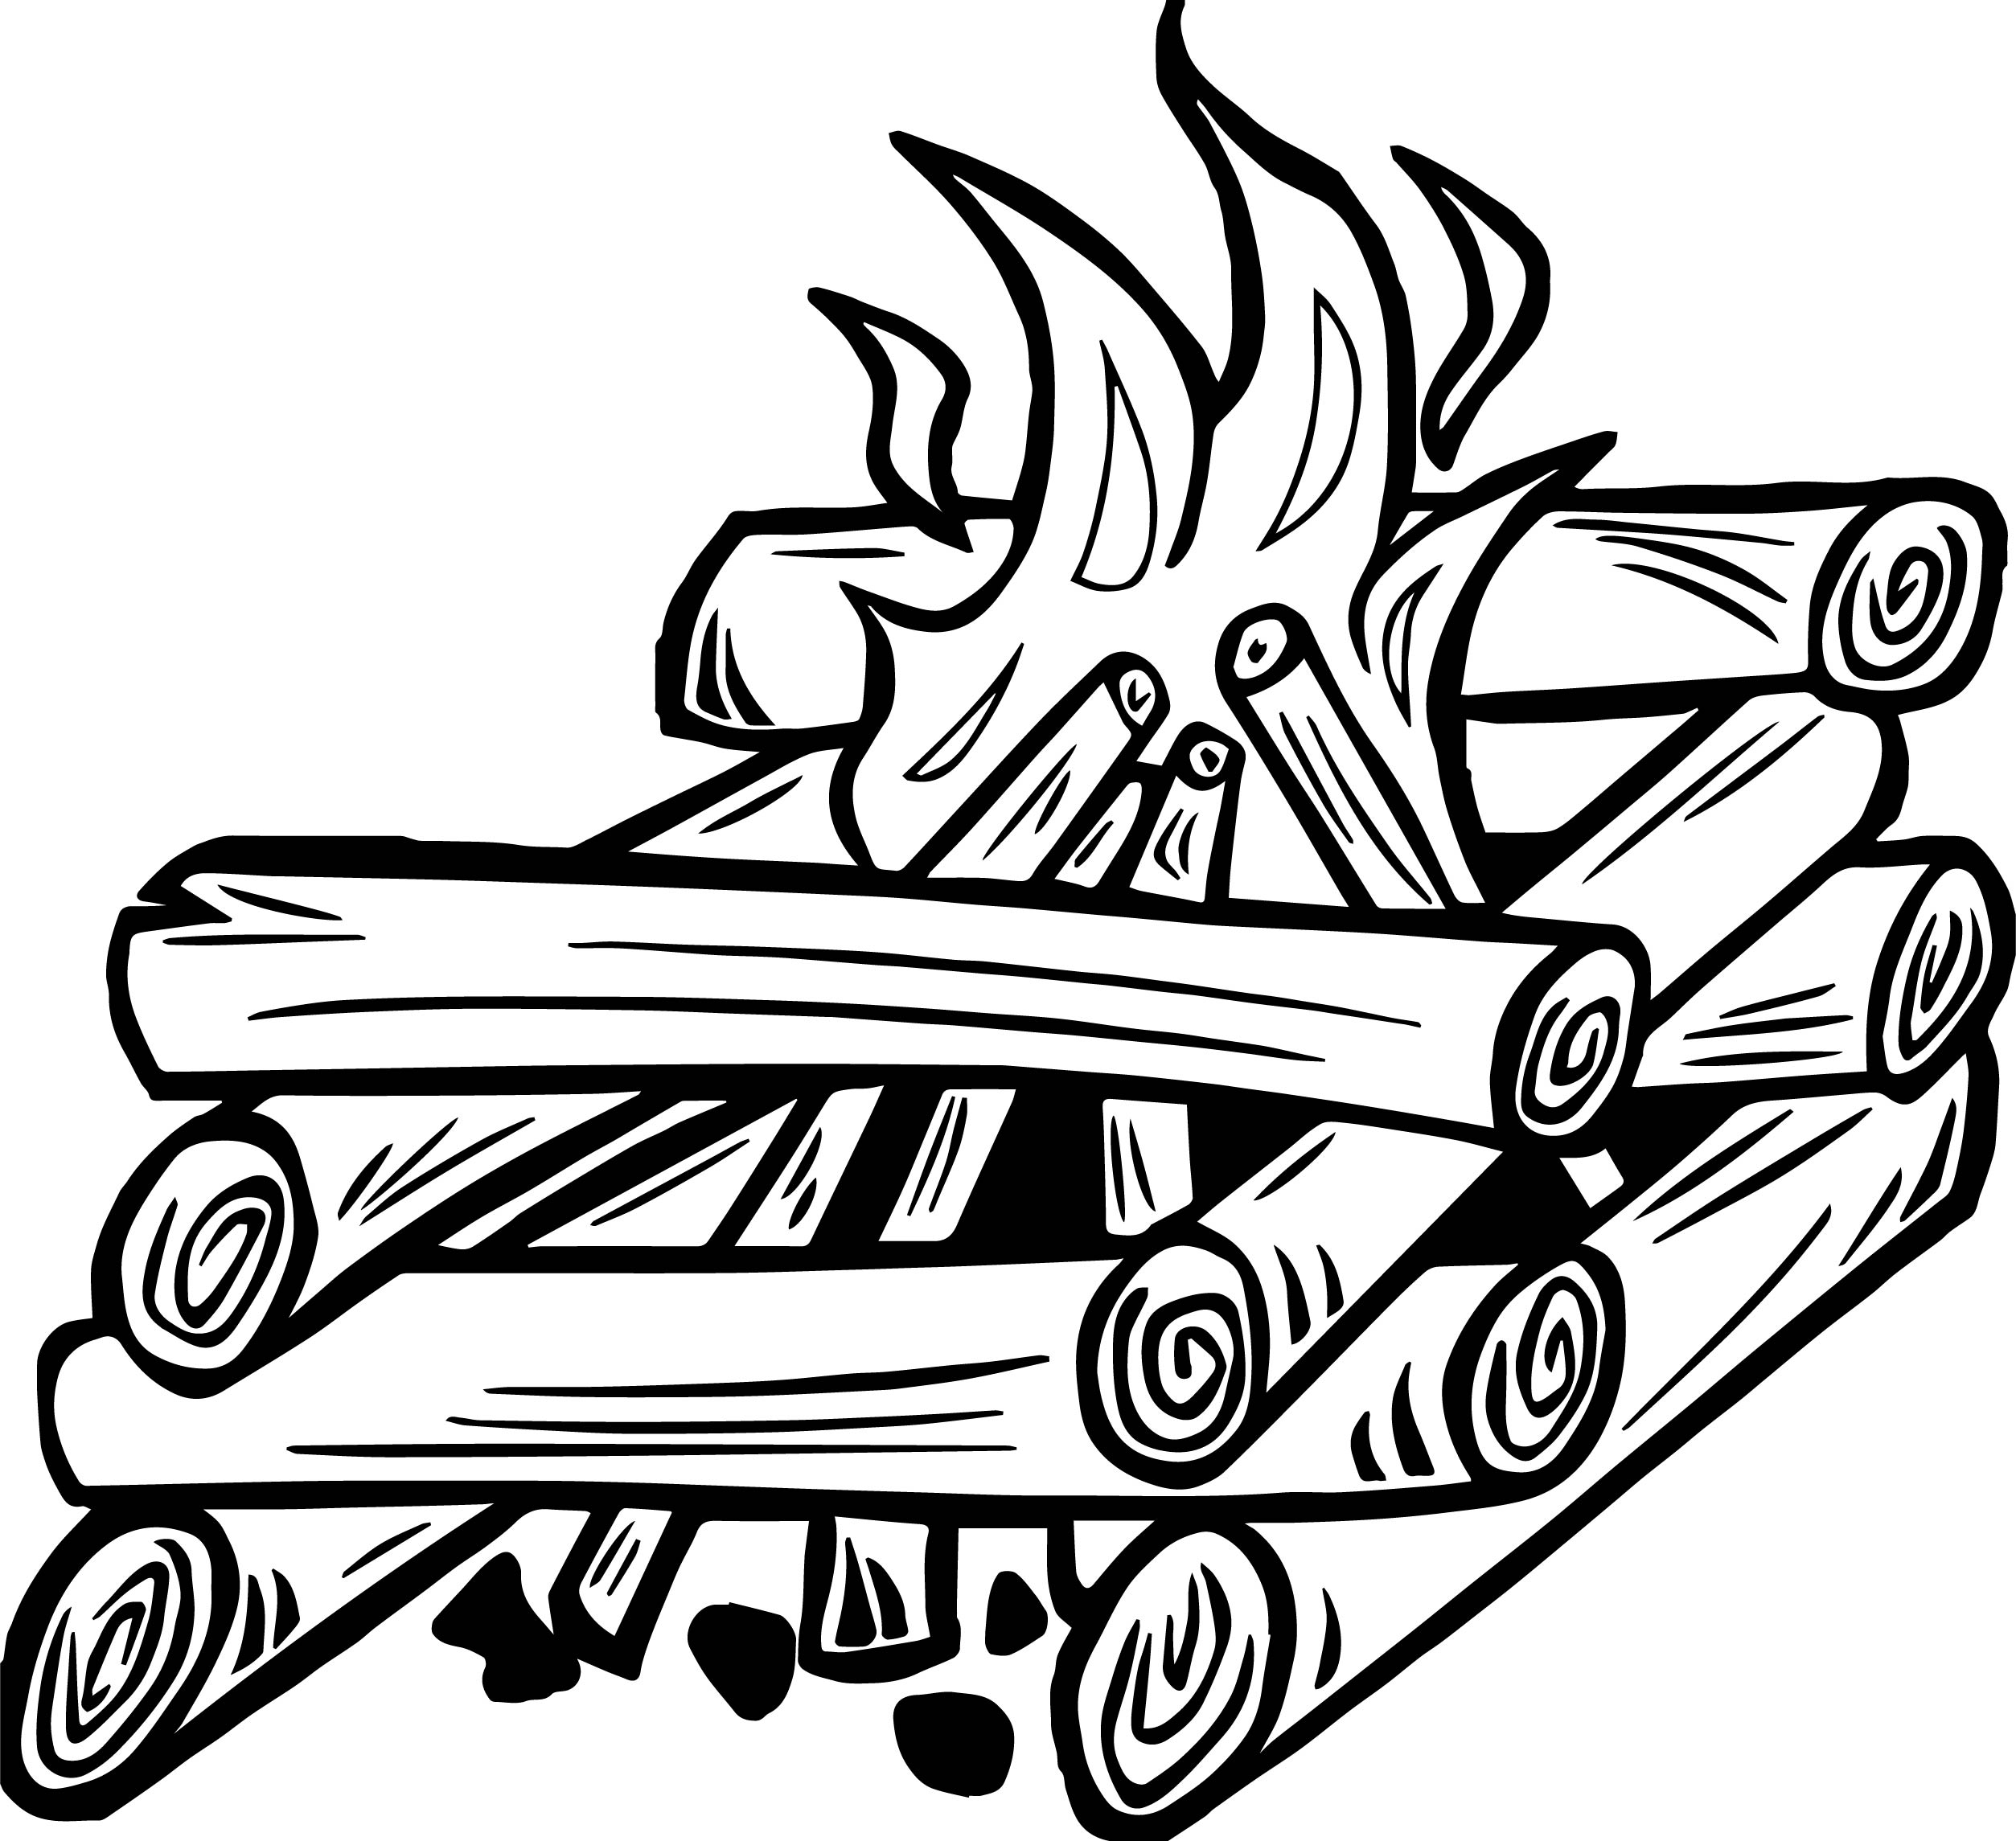 fire coloring pages campfire fire gif coloring page wecoloringpagecom coloring fire pages